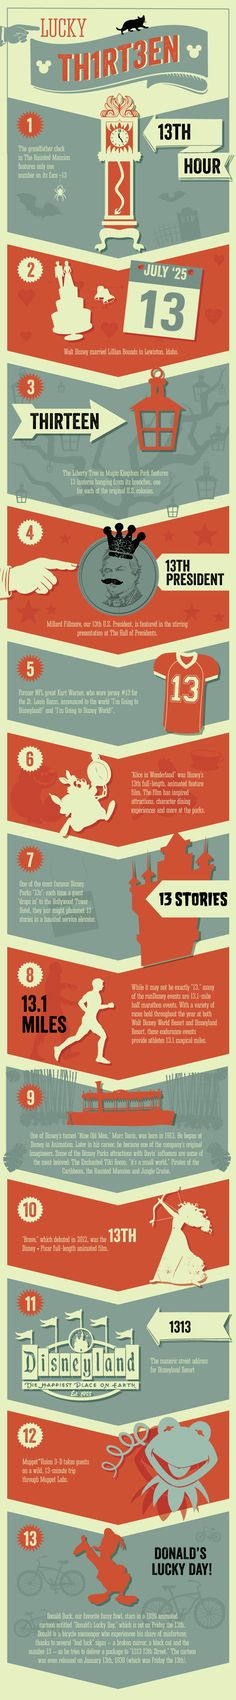 "Lucky ""13"" at Disney Parks in honor of Friday the 13th. #infographic #DisneySide"